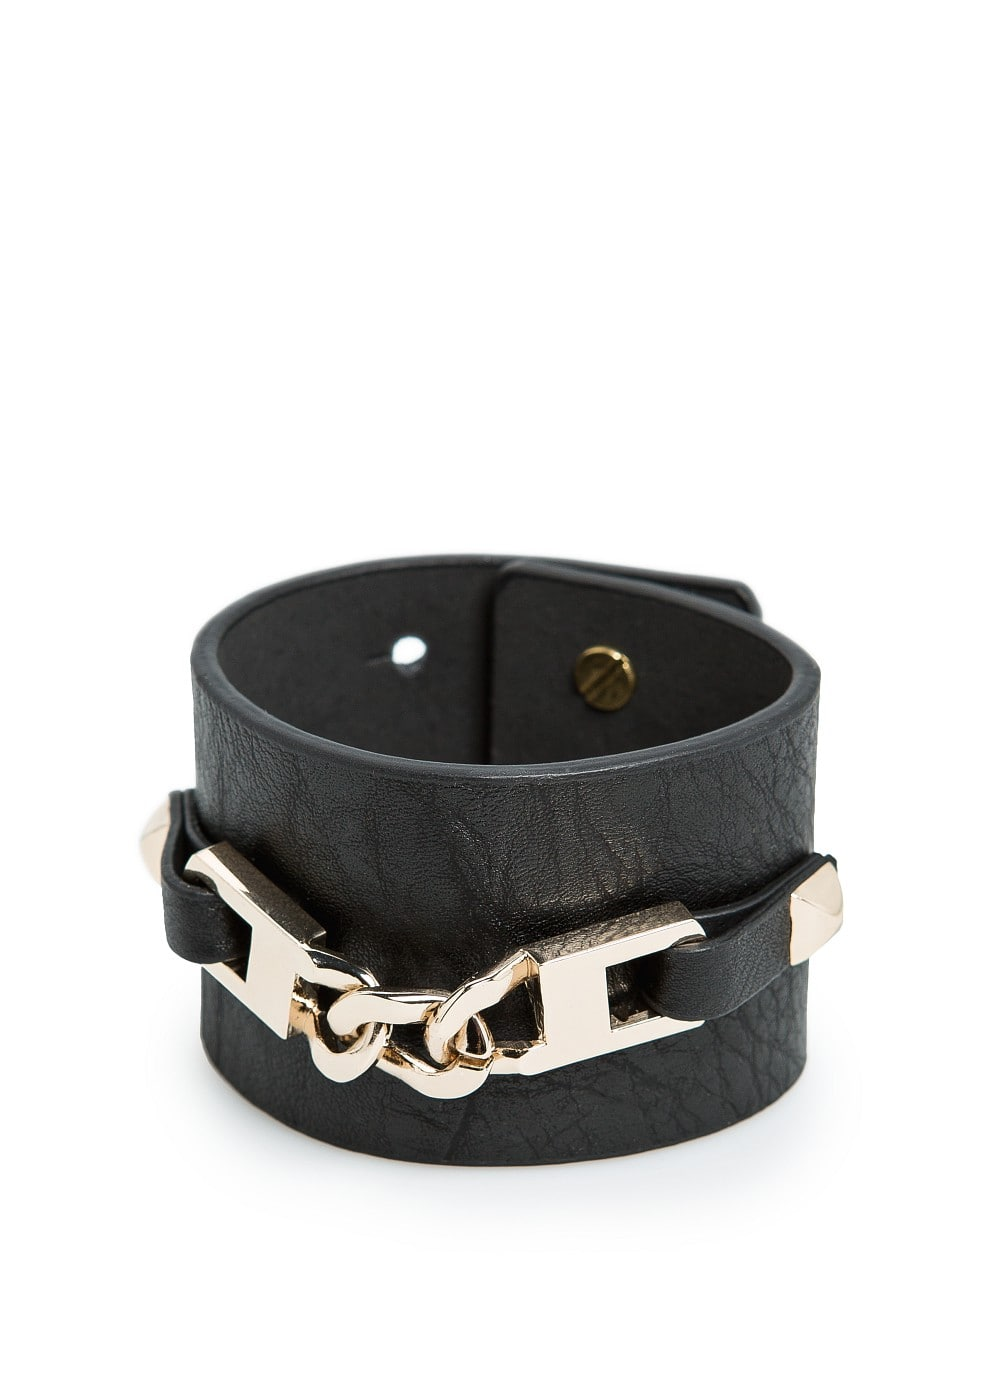 LINKS LEATHER EFFECT CUFF